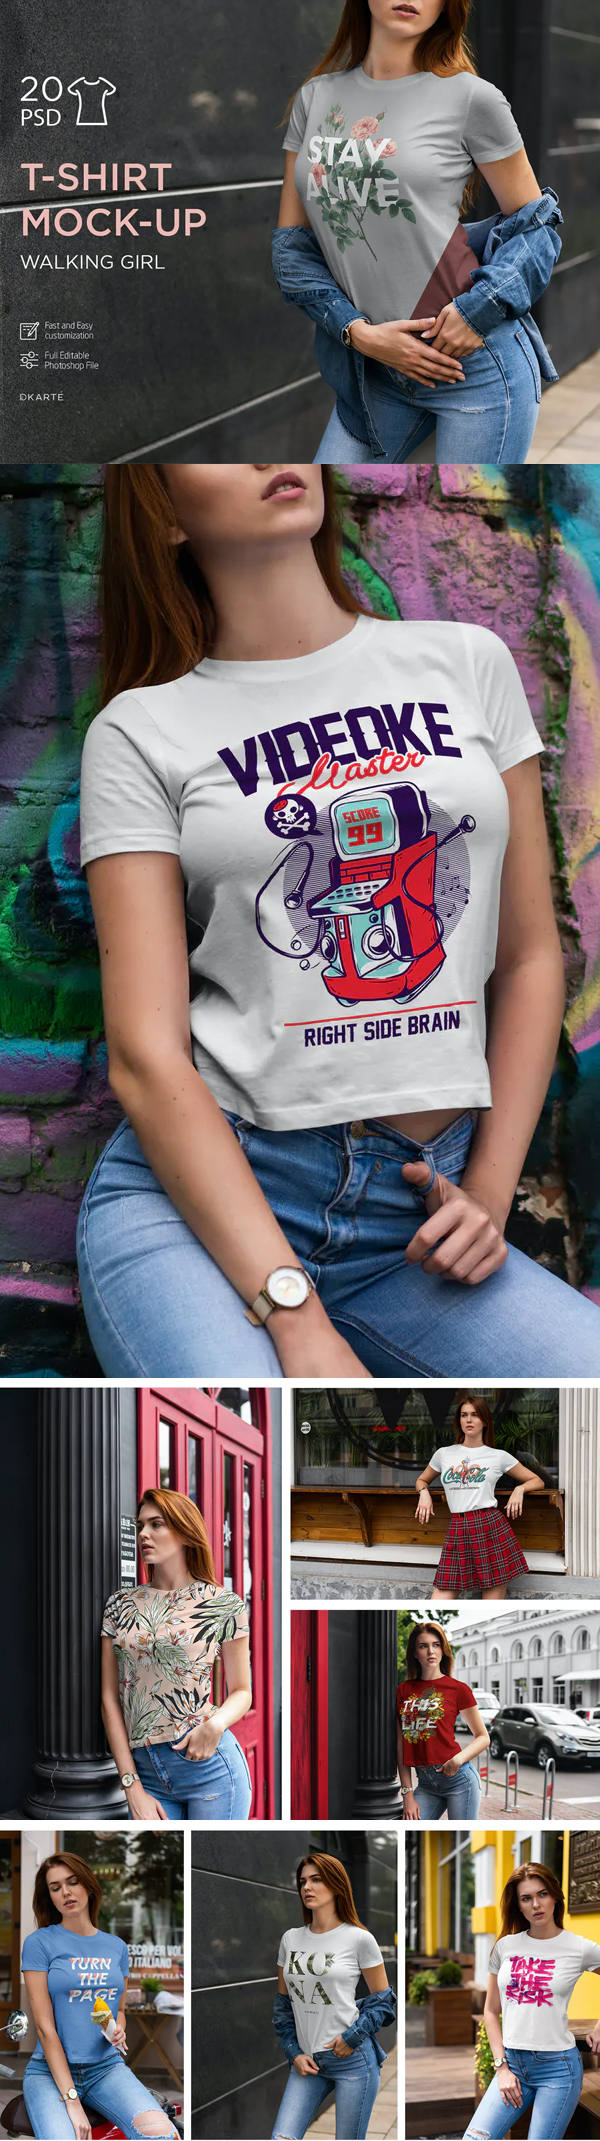 T-Shirt Mock-Up Walking Girl